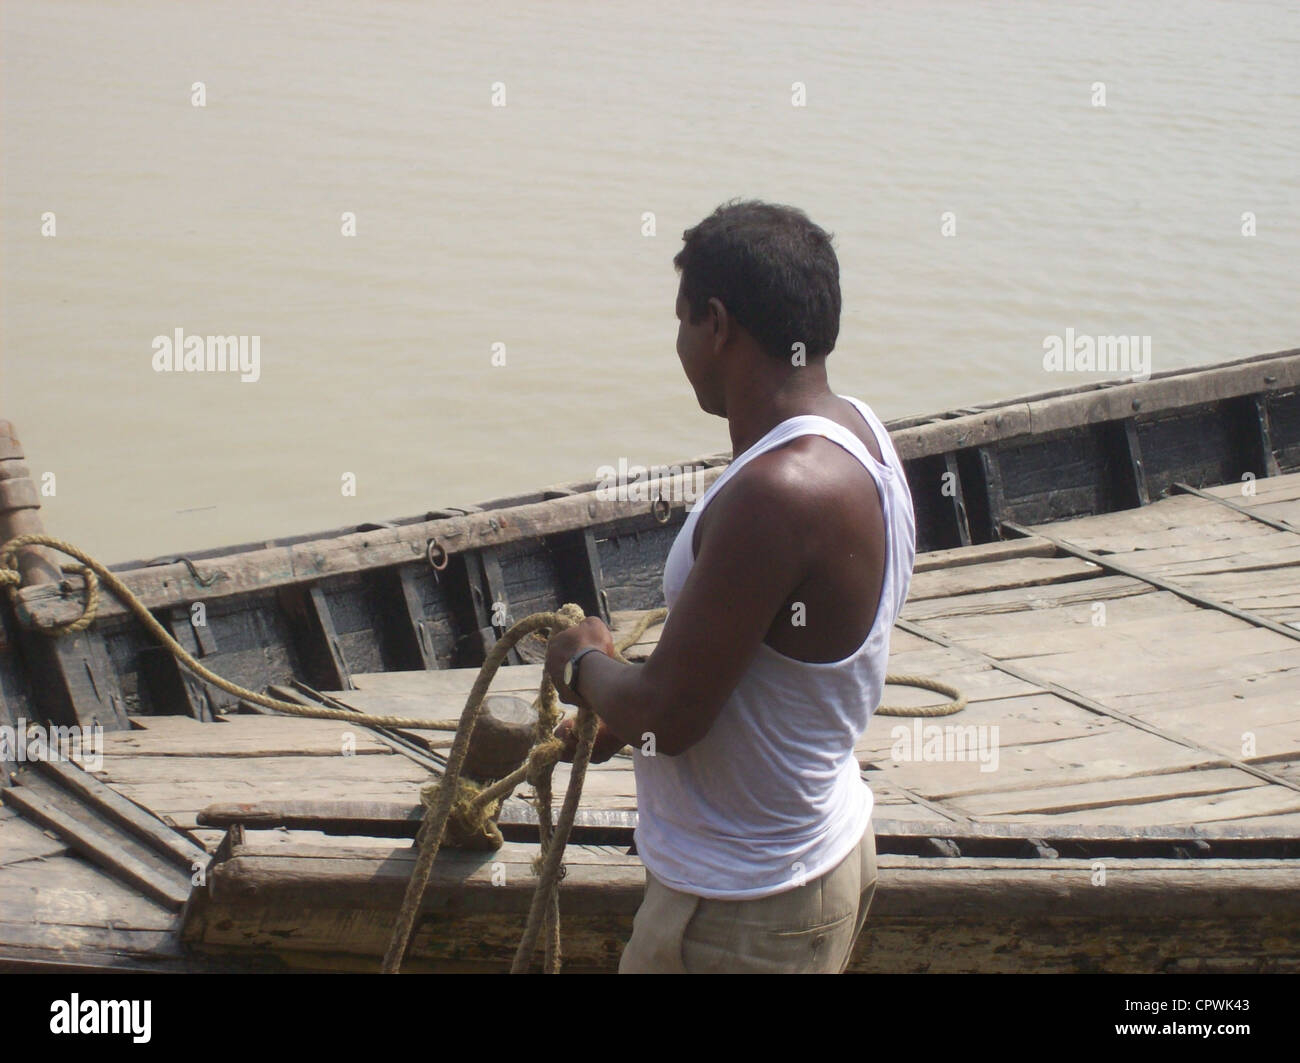 Boatmen tying their boat's rope with a log after returning from fishing. - Stock Image